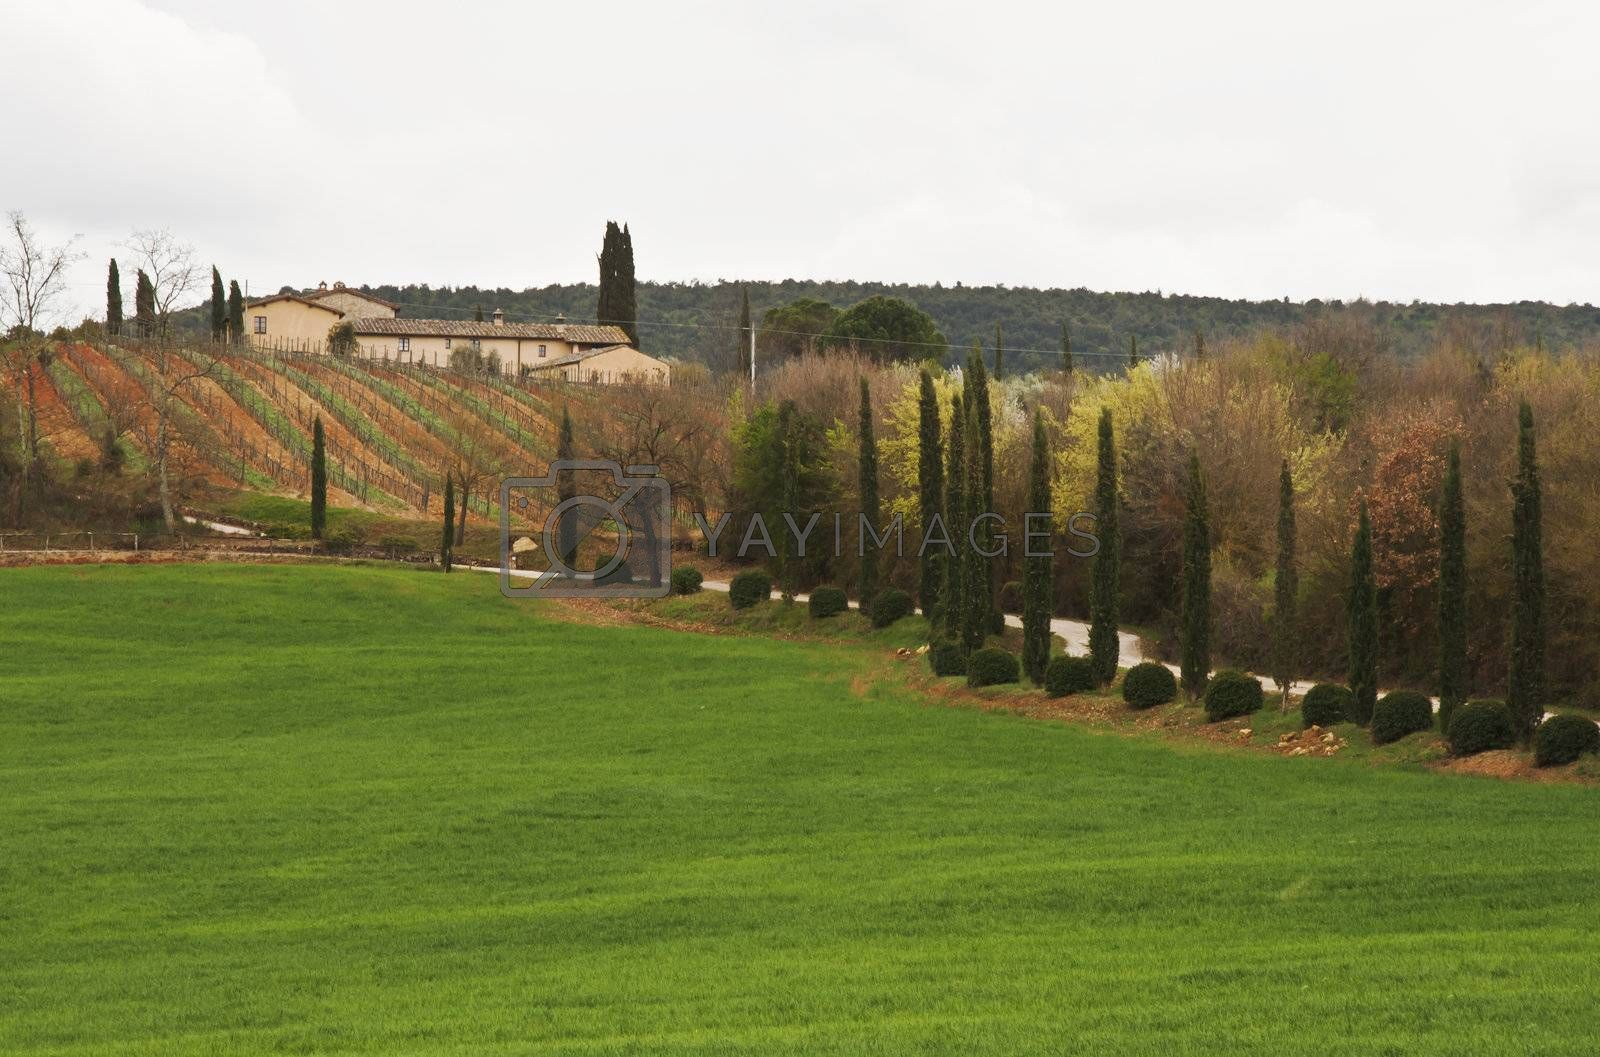 fram and road to the hill in tuscan countryside, Italy